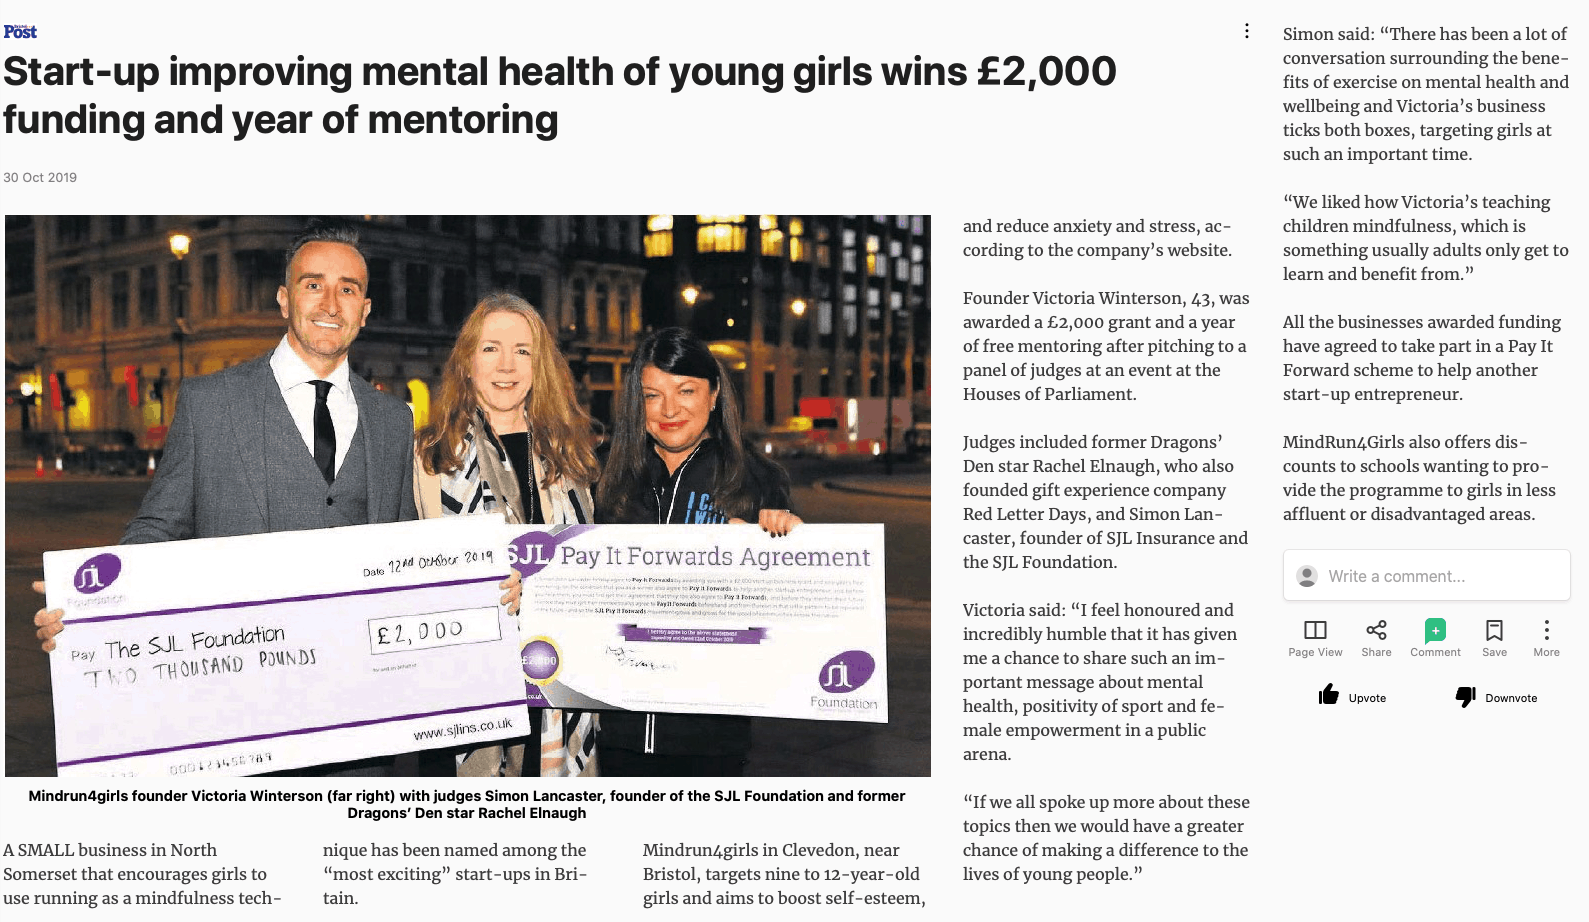 Start-up improving mental health of young girls wins SJL Foundation funding and year of mentoring